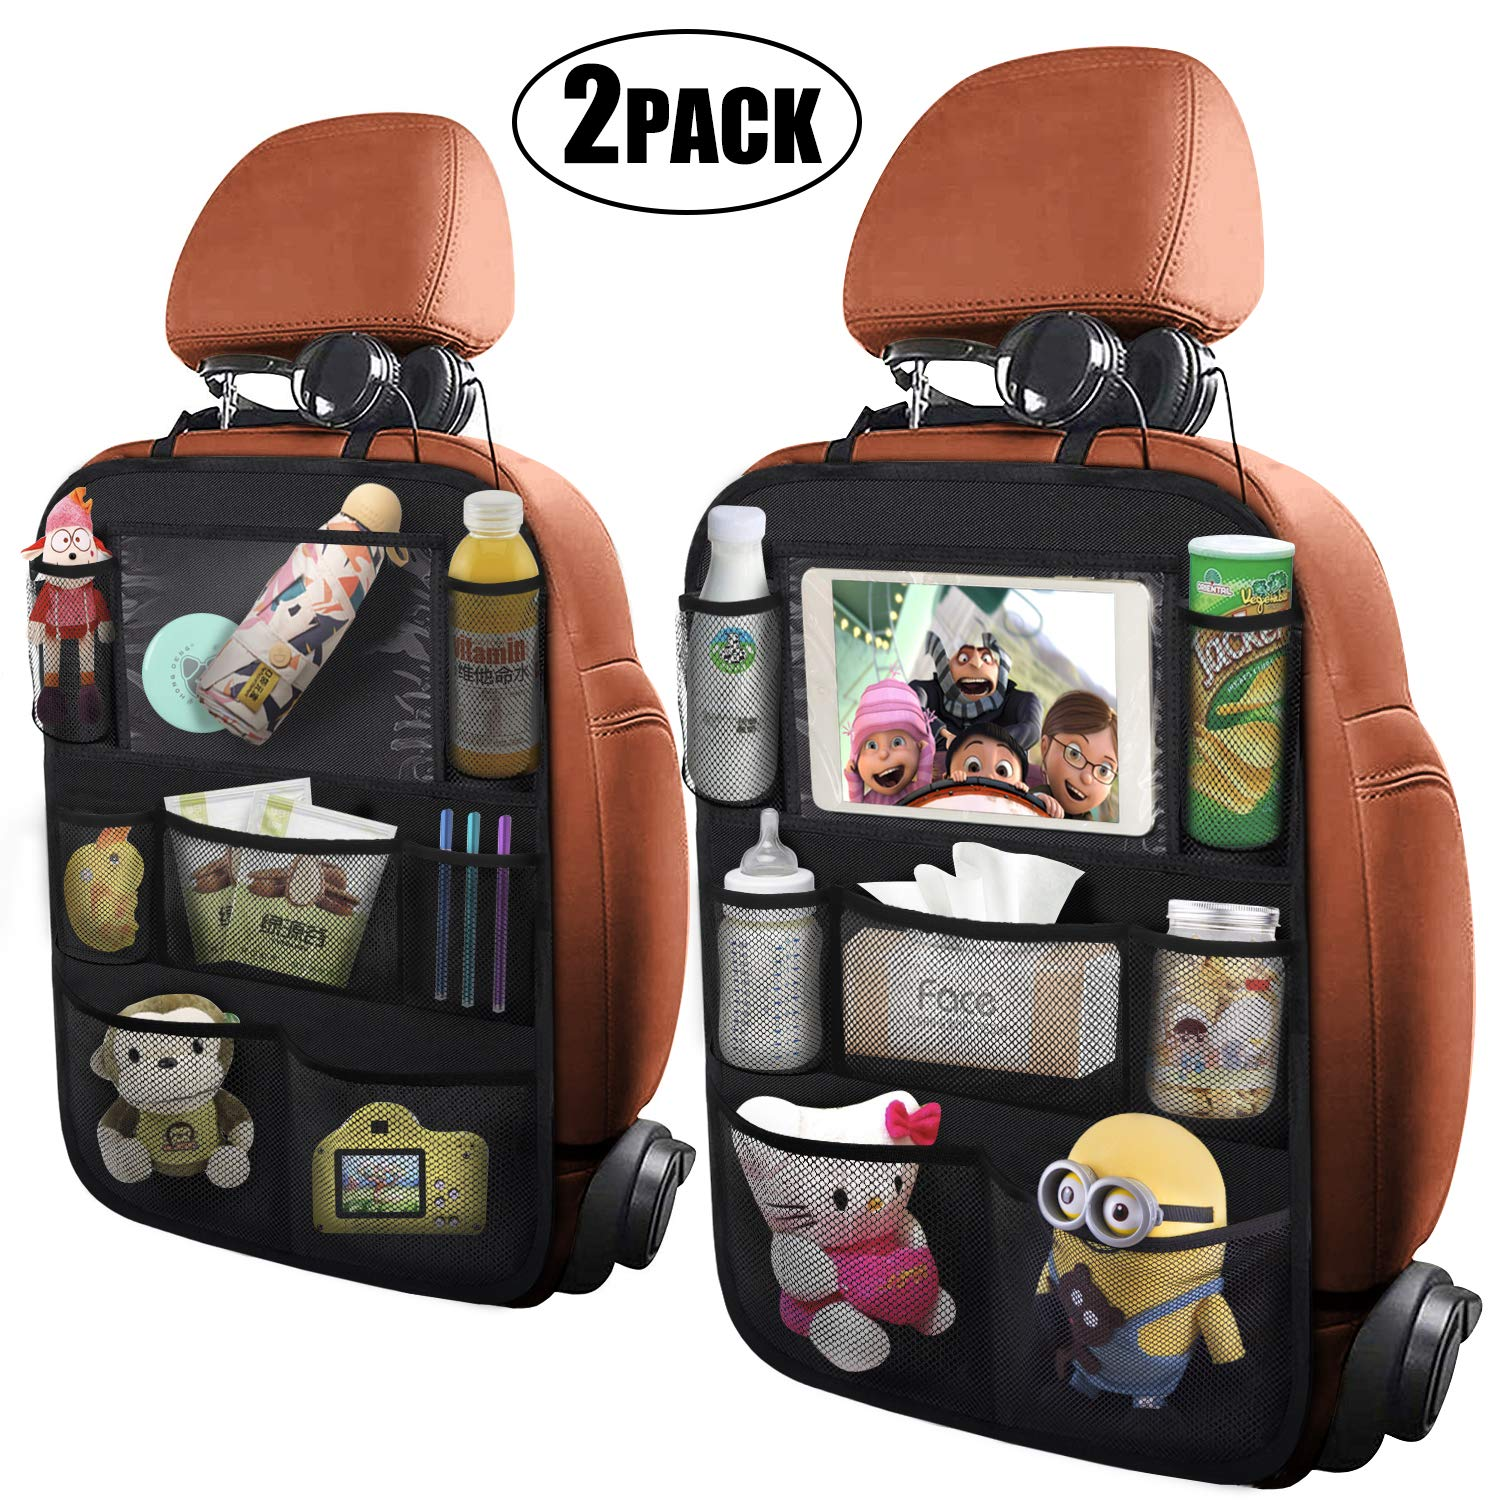 ONE PIX Car Backseat Organizer with Touch Screen Tablet Holder + 7 Storage Pockets, Kick Mats Seat Back Protectors for Kids and Toddlers Premium Vehicle Travel Accessories (2 Pack) by ONE PIX